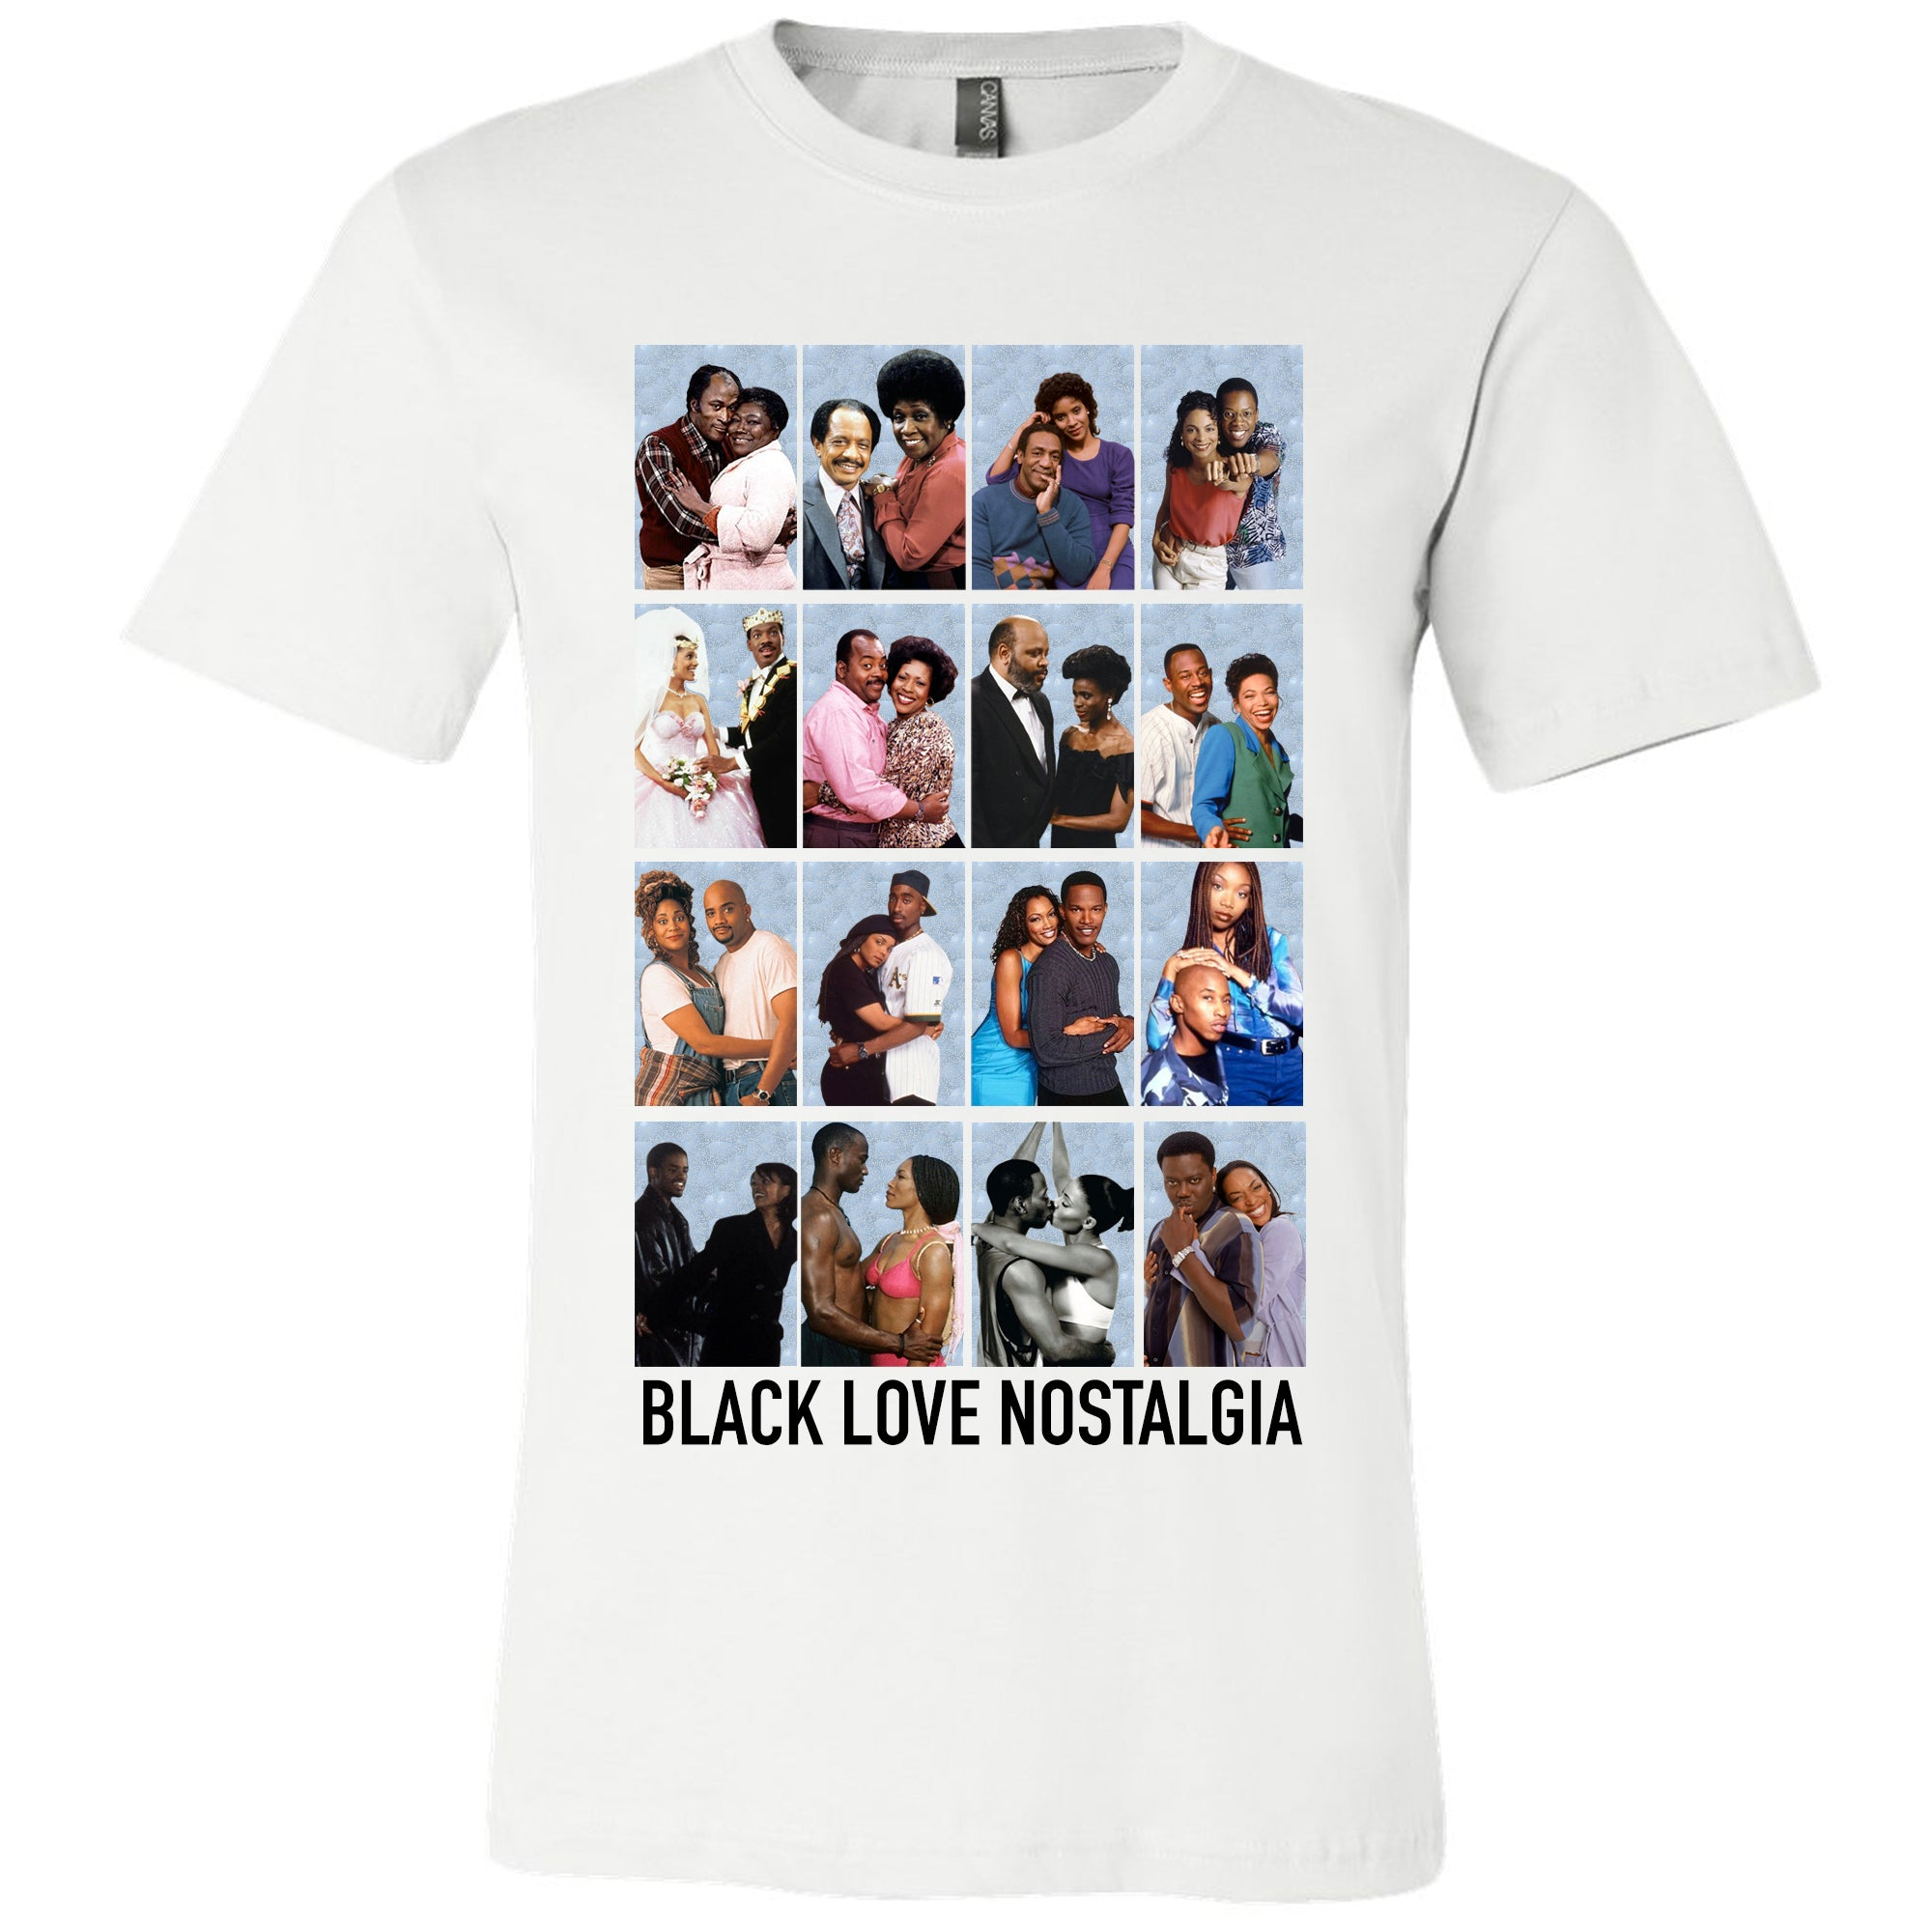 Black Love Unisex T-shirt - The Carter Brand - Black By Popular Demand - Rooting For Everybody Black - Black Pride Apparel